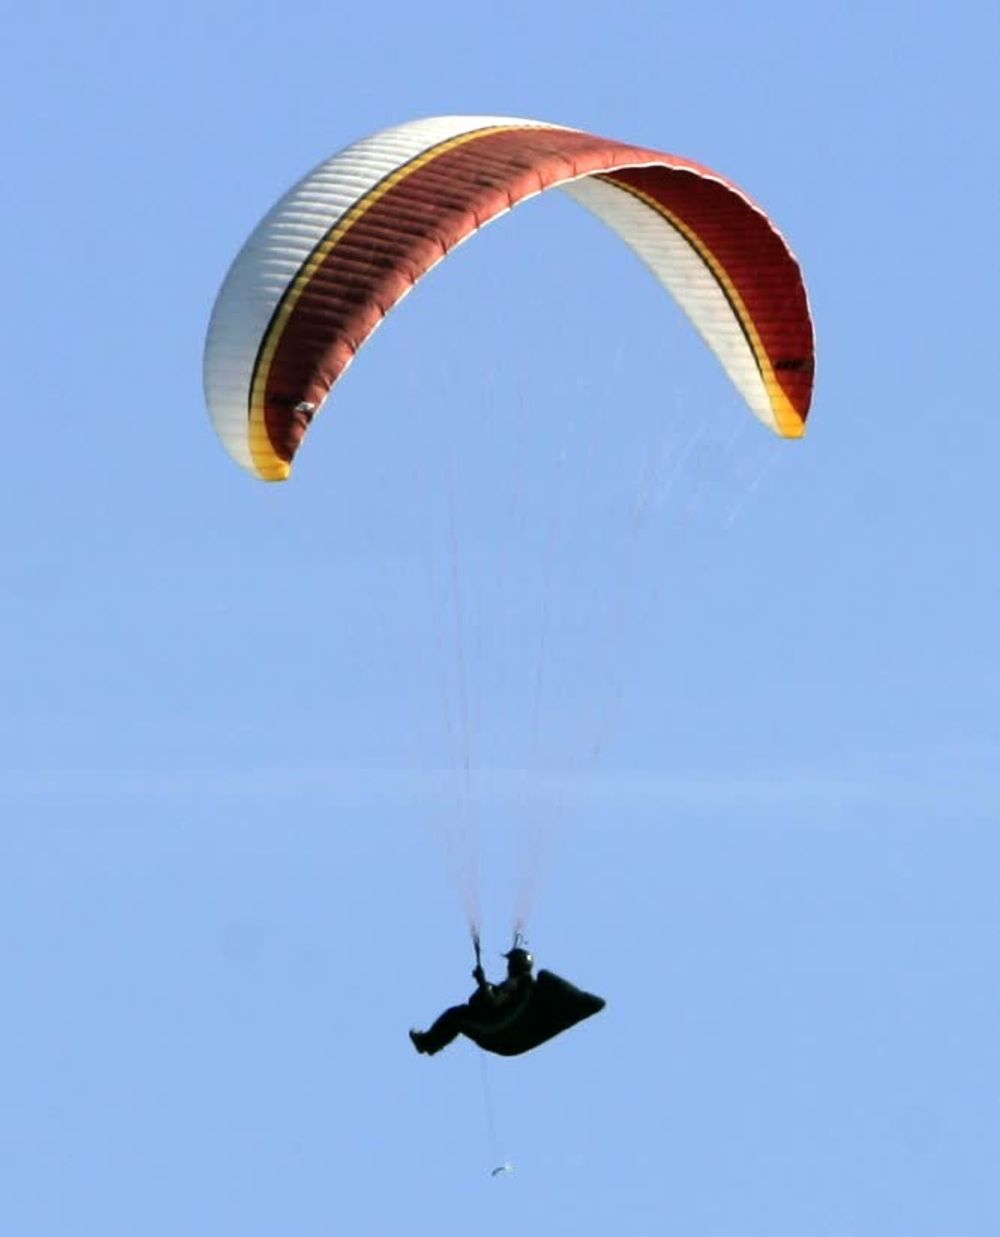 title: Paragliding at Santa Barbara